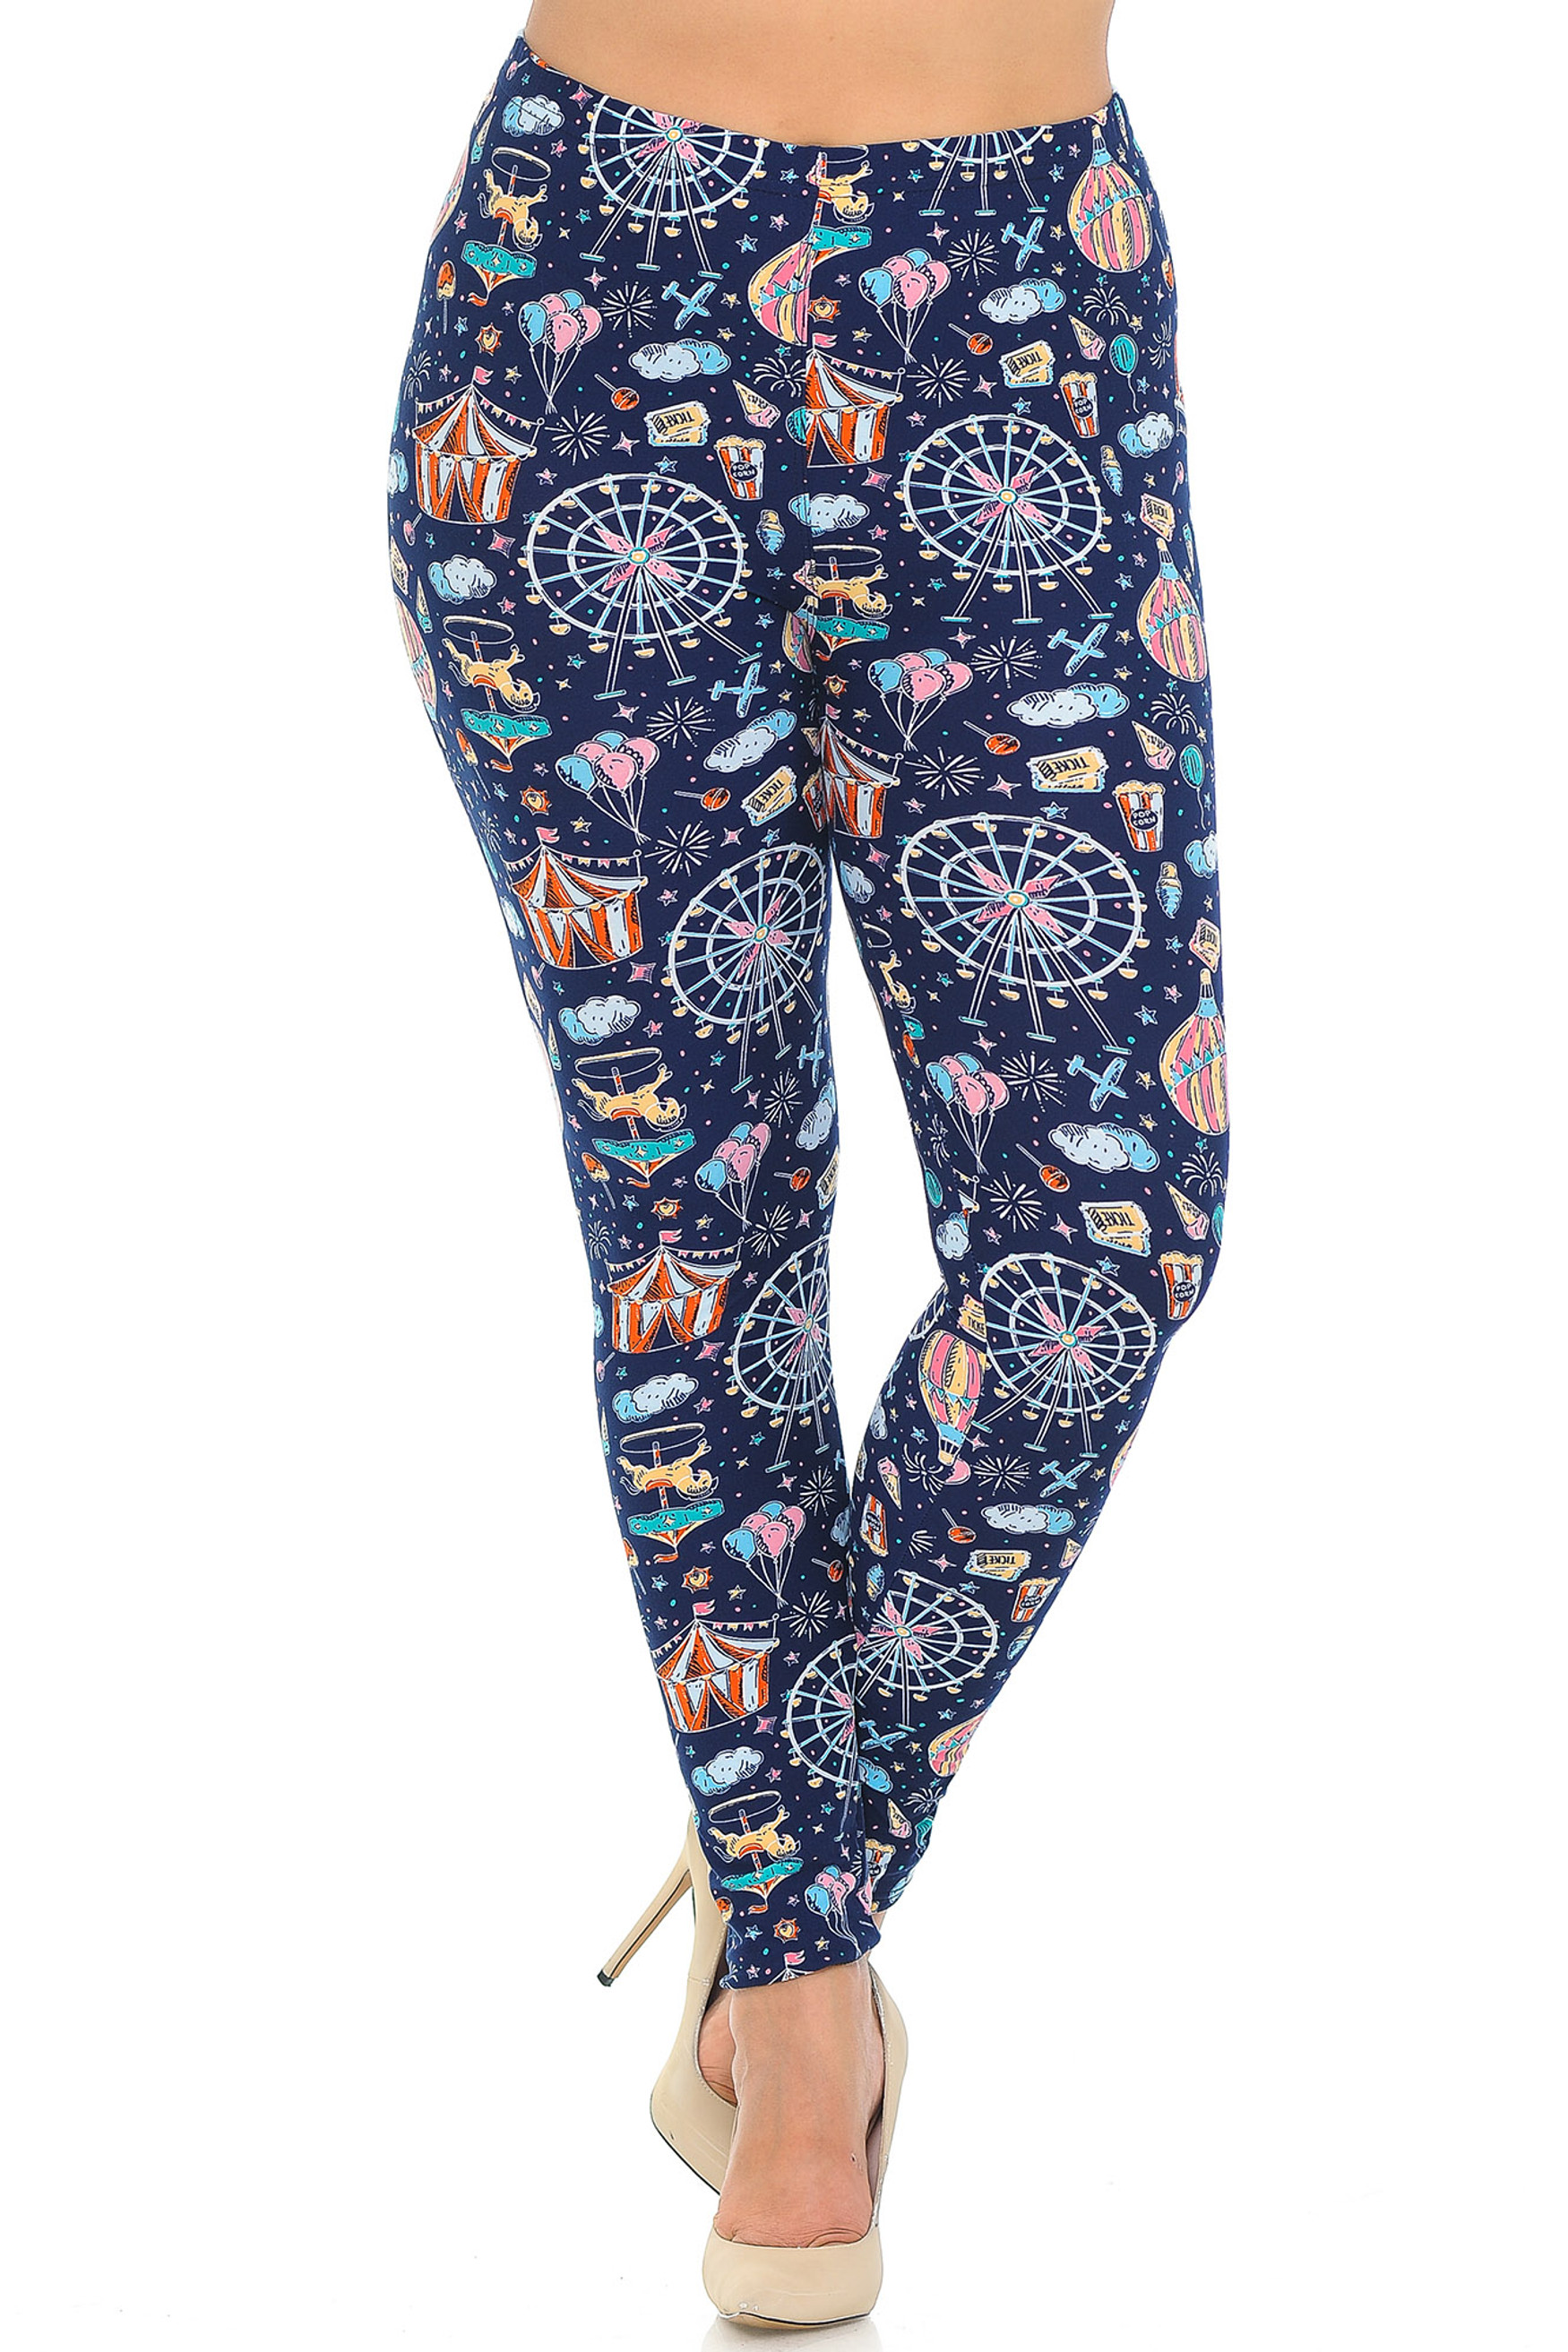 Soft Brushed Vintage Carnival Extra Plus Size Leggings - 3X-5X